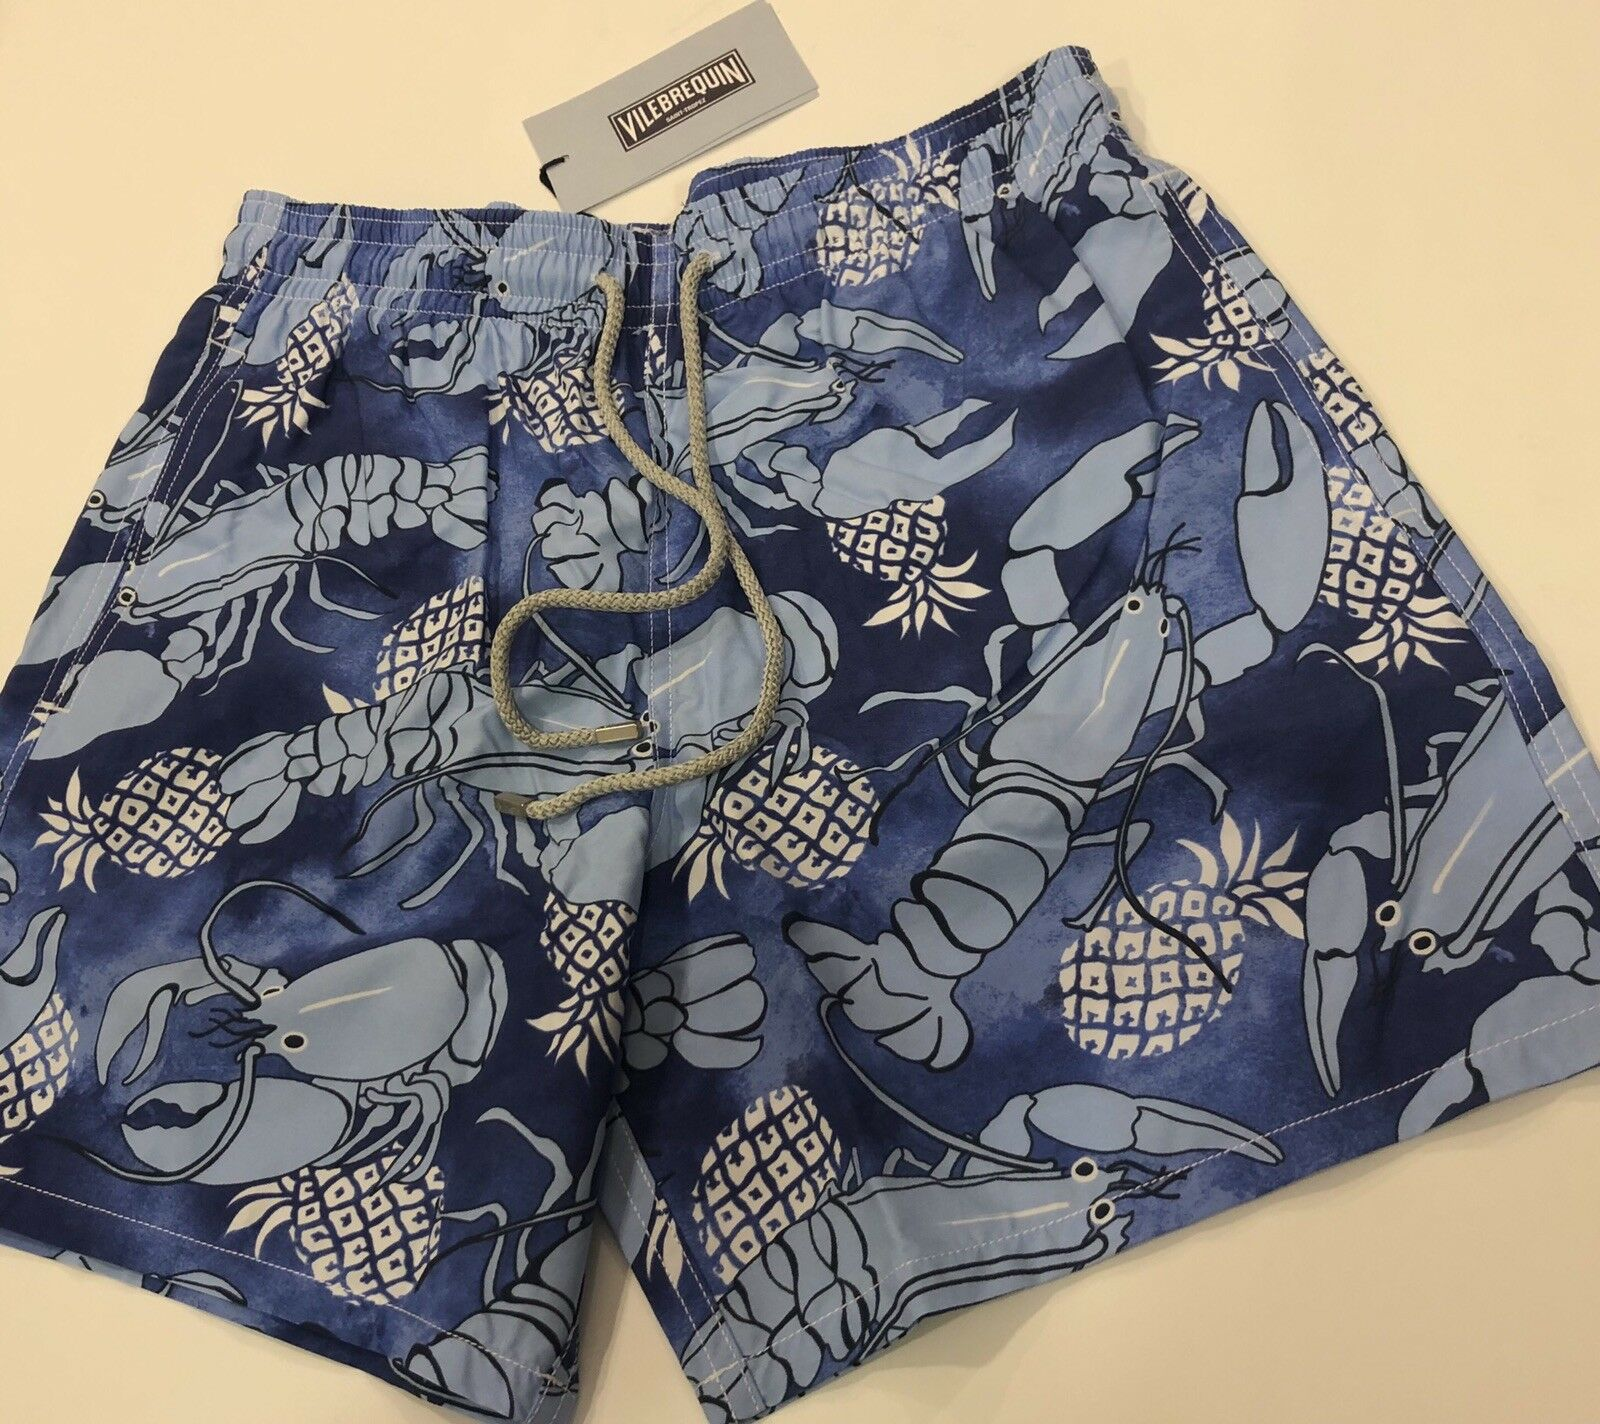 New w Tags Authentic Vilebrequin MOOREA Lobsters bluee Swim Trunks for Men 2XL